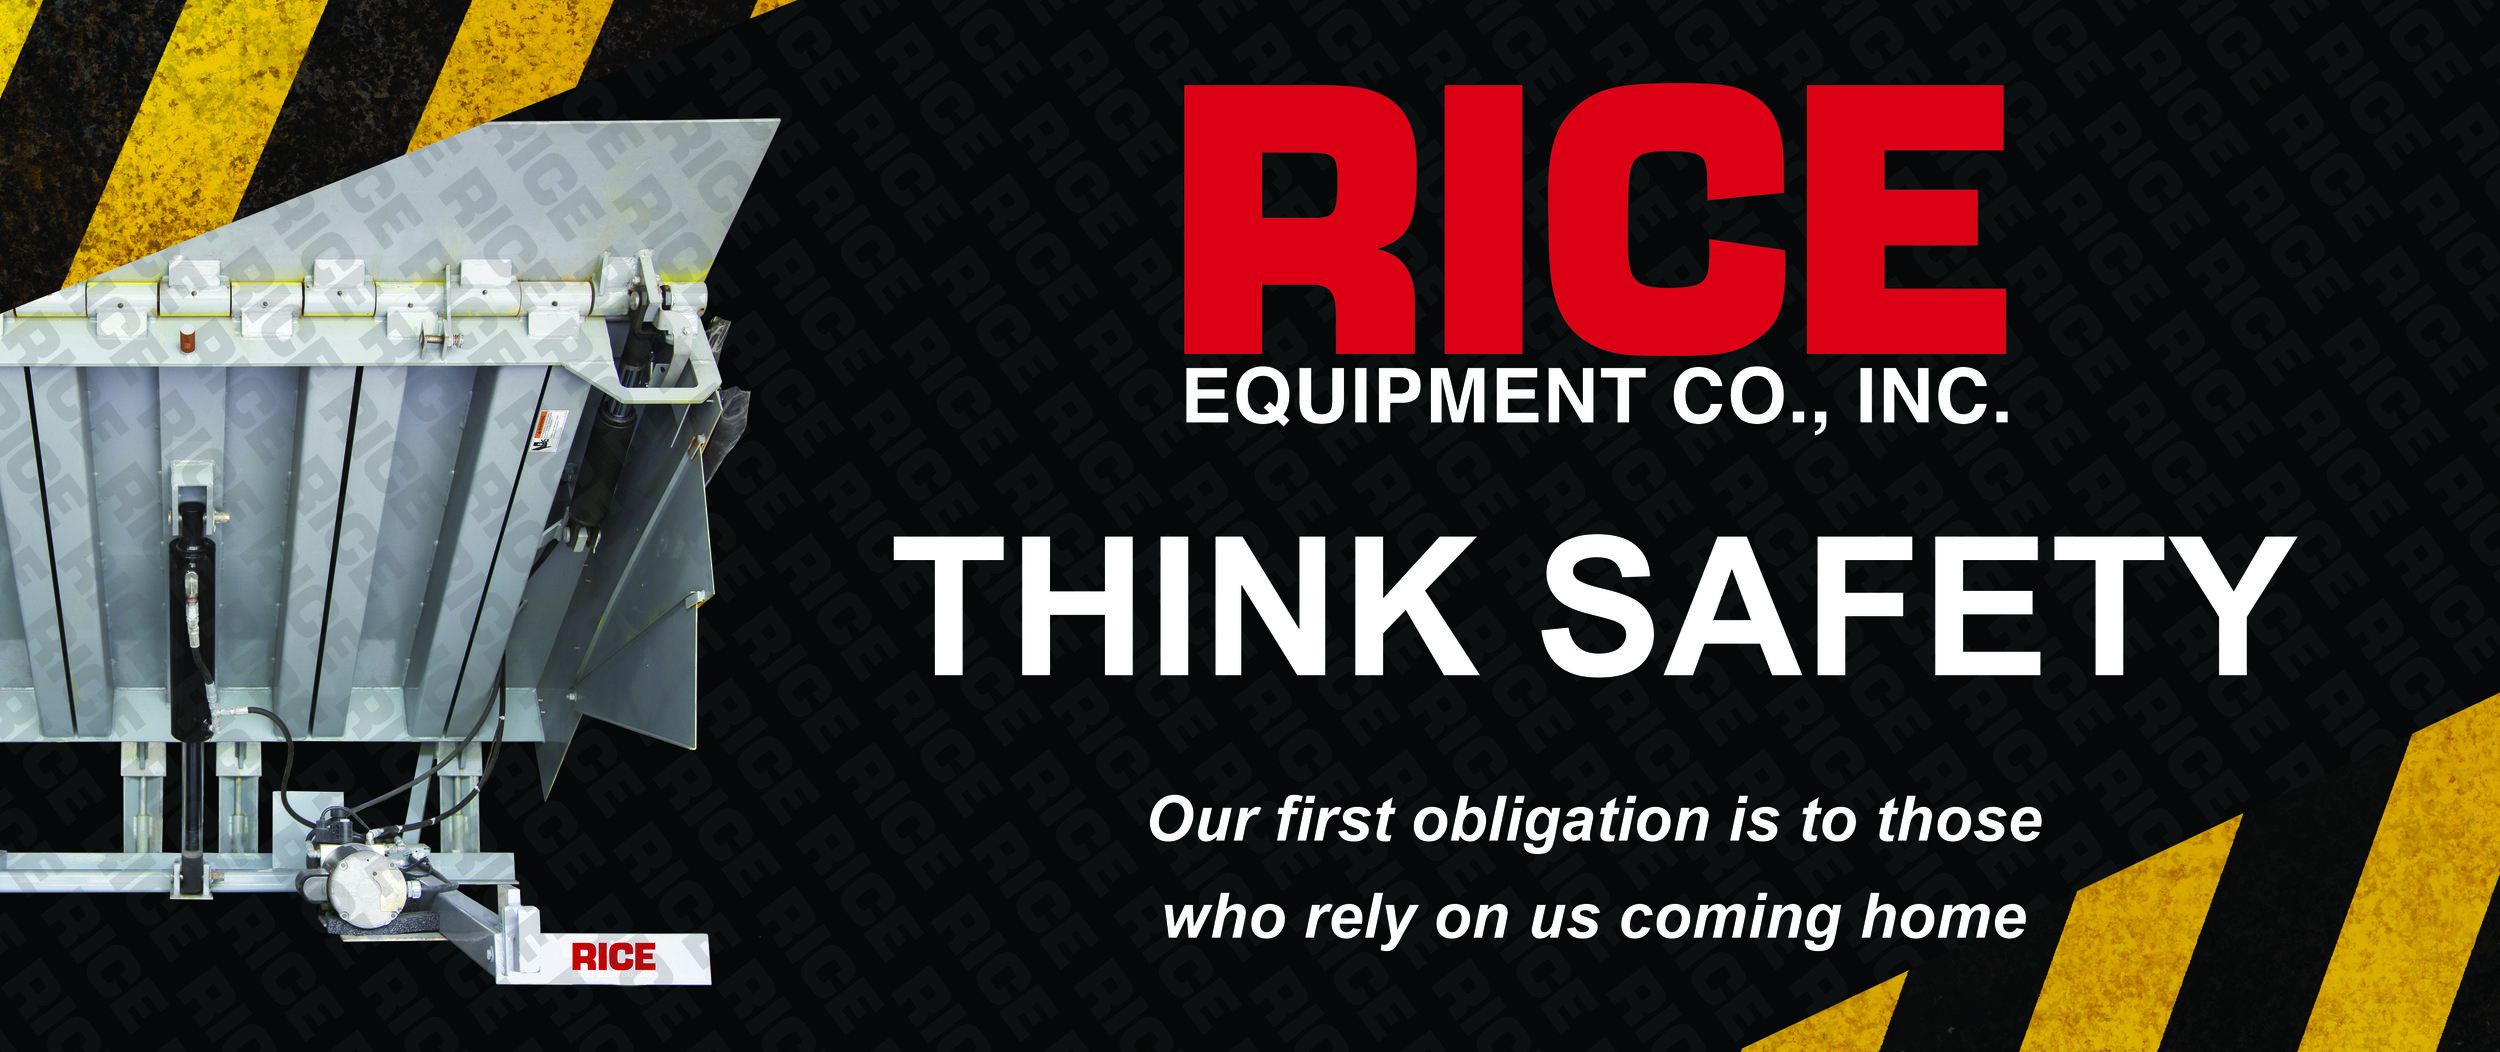 Loading Dock Safety Equipment - Rice Equipment St Louis MO IL